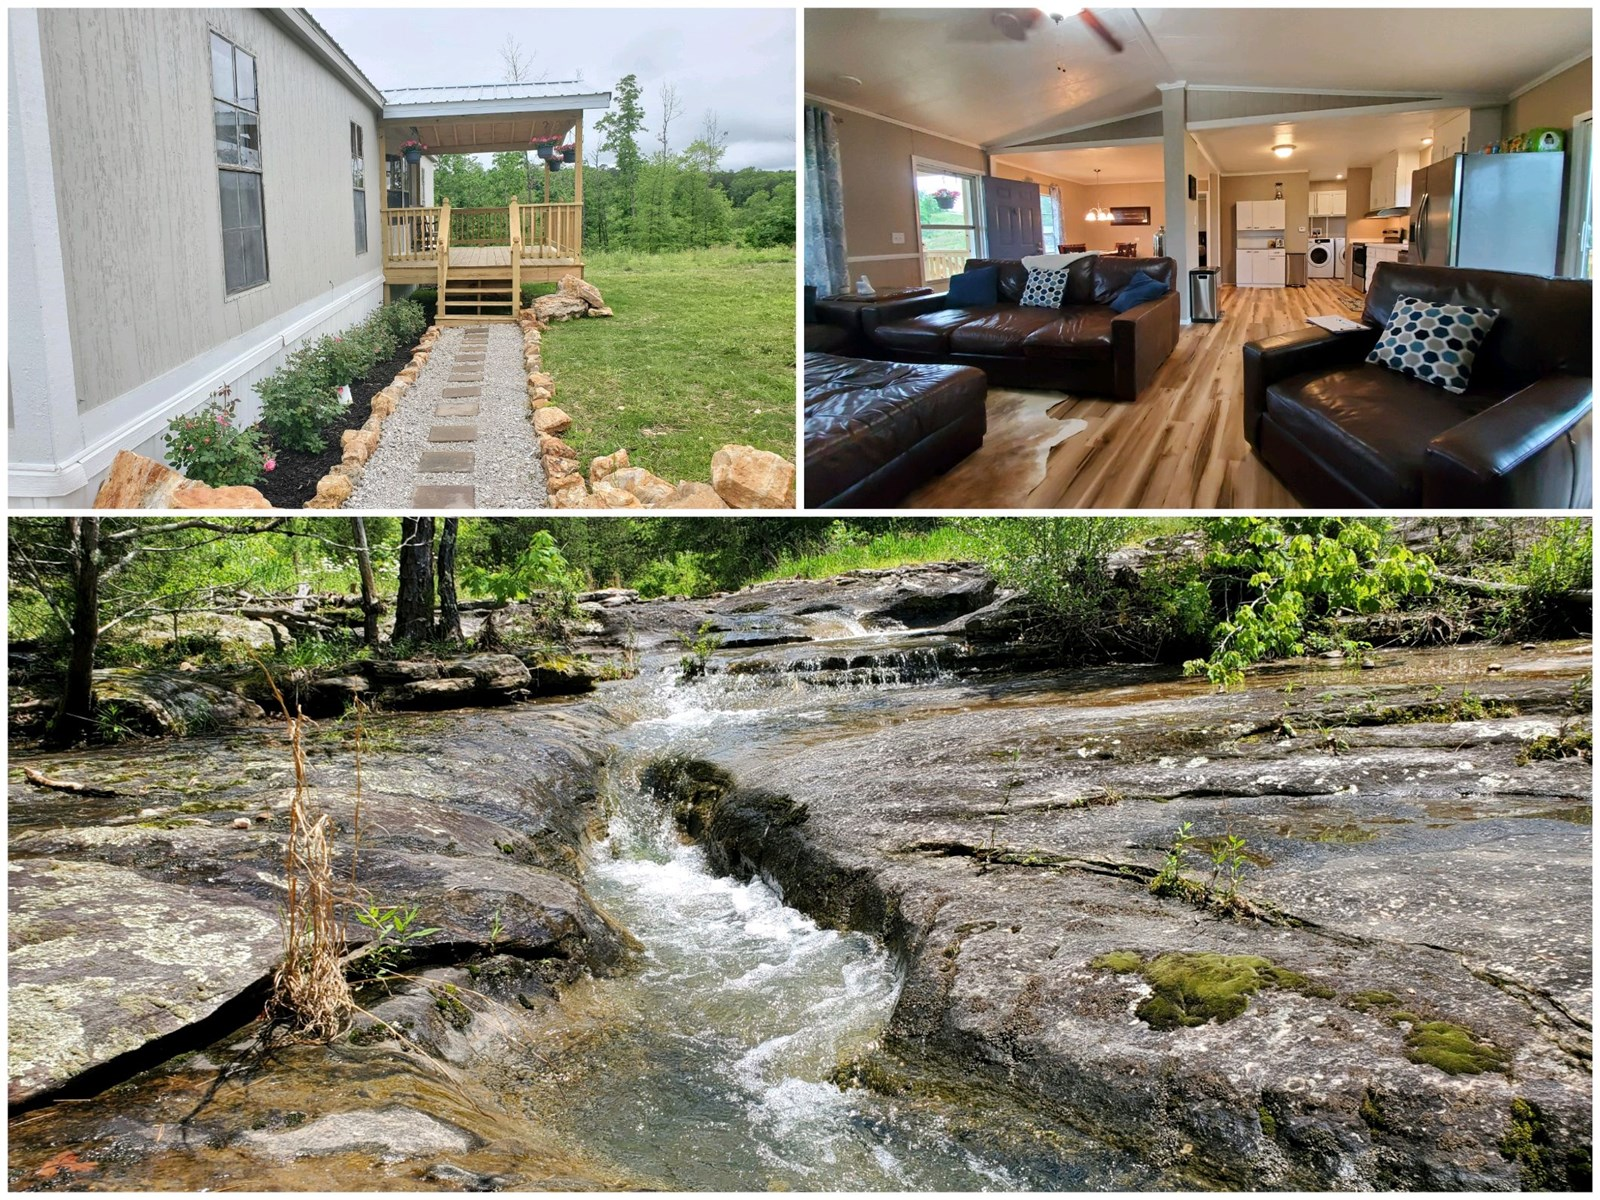 Country Home and Acreage for Sale in Southern MO Ozarks